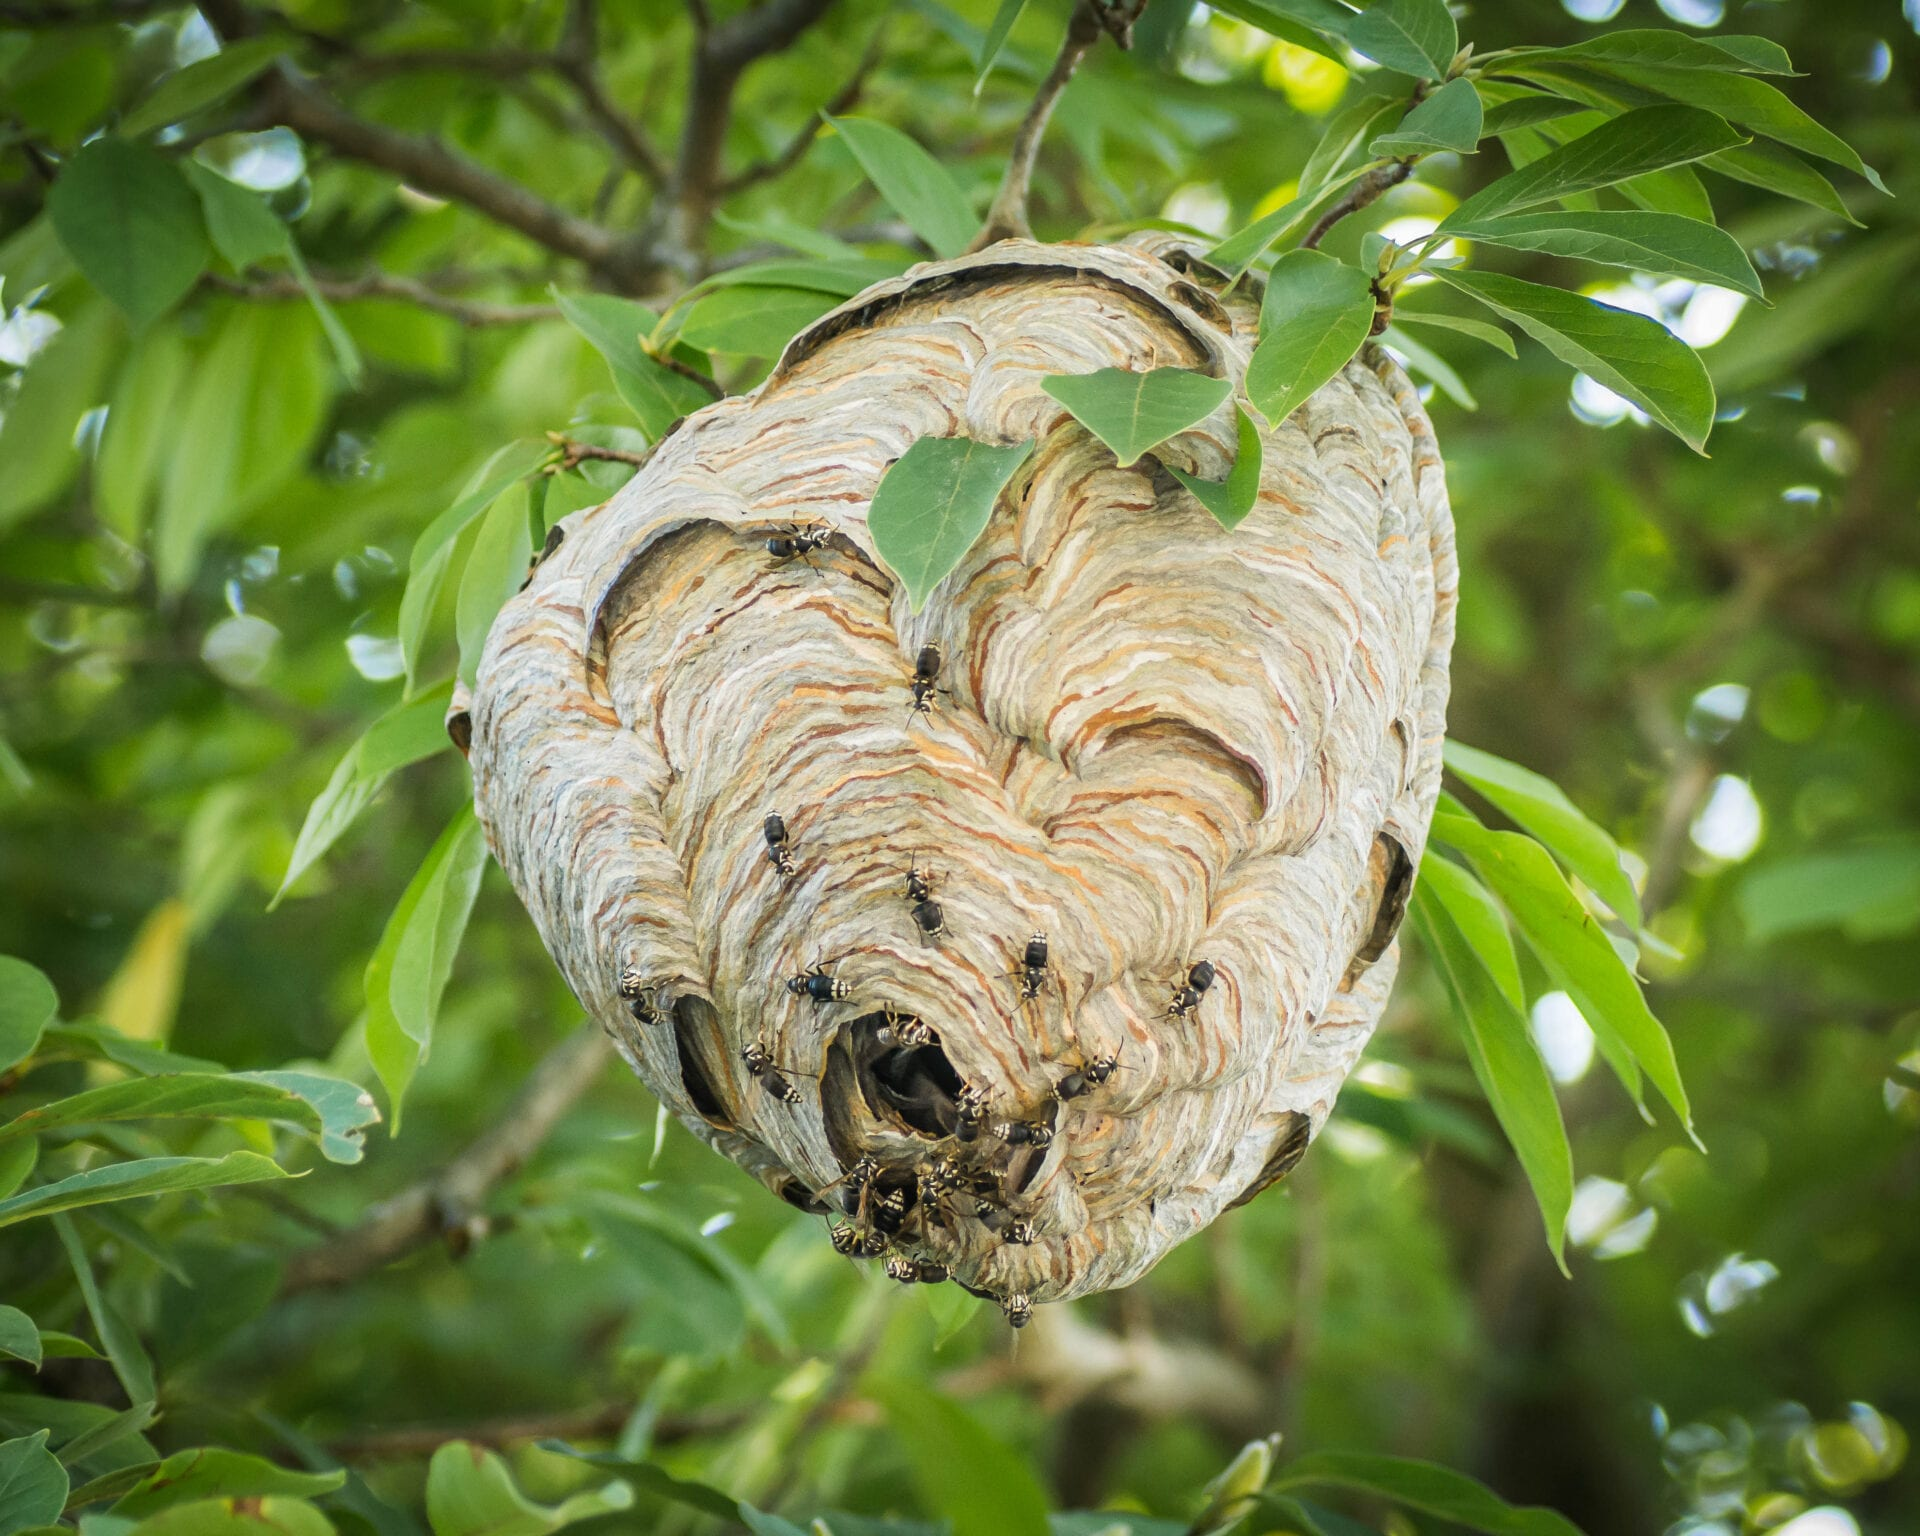 A hornet nest that needs to be treated by a pest control company in Woodstock, NY